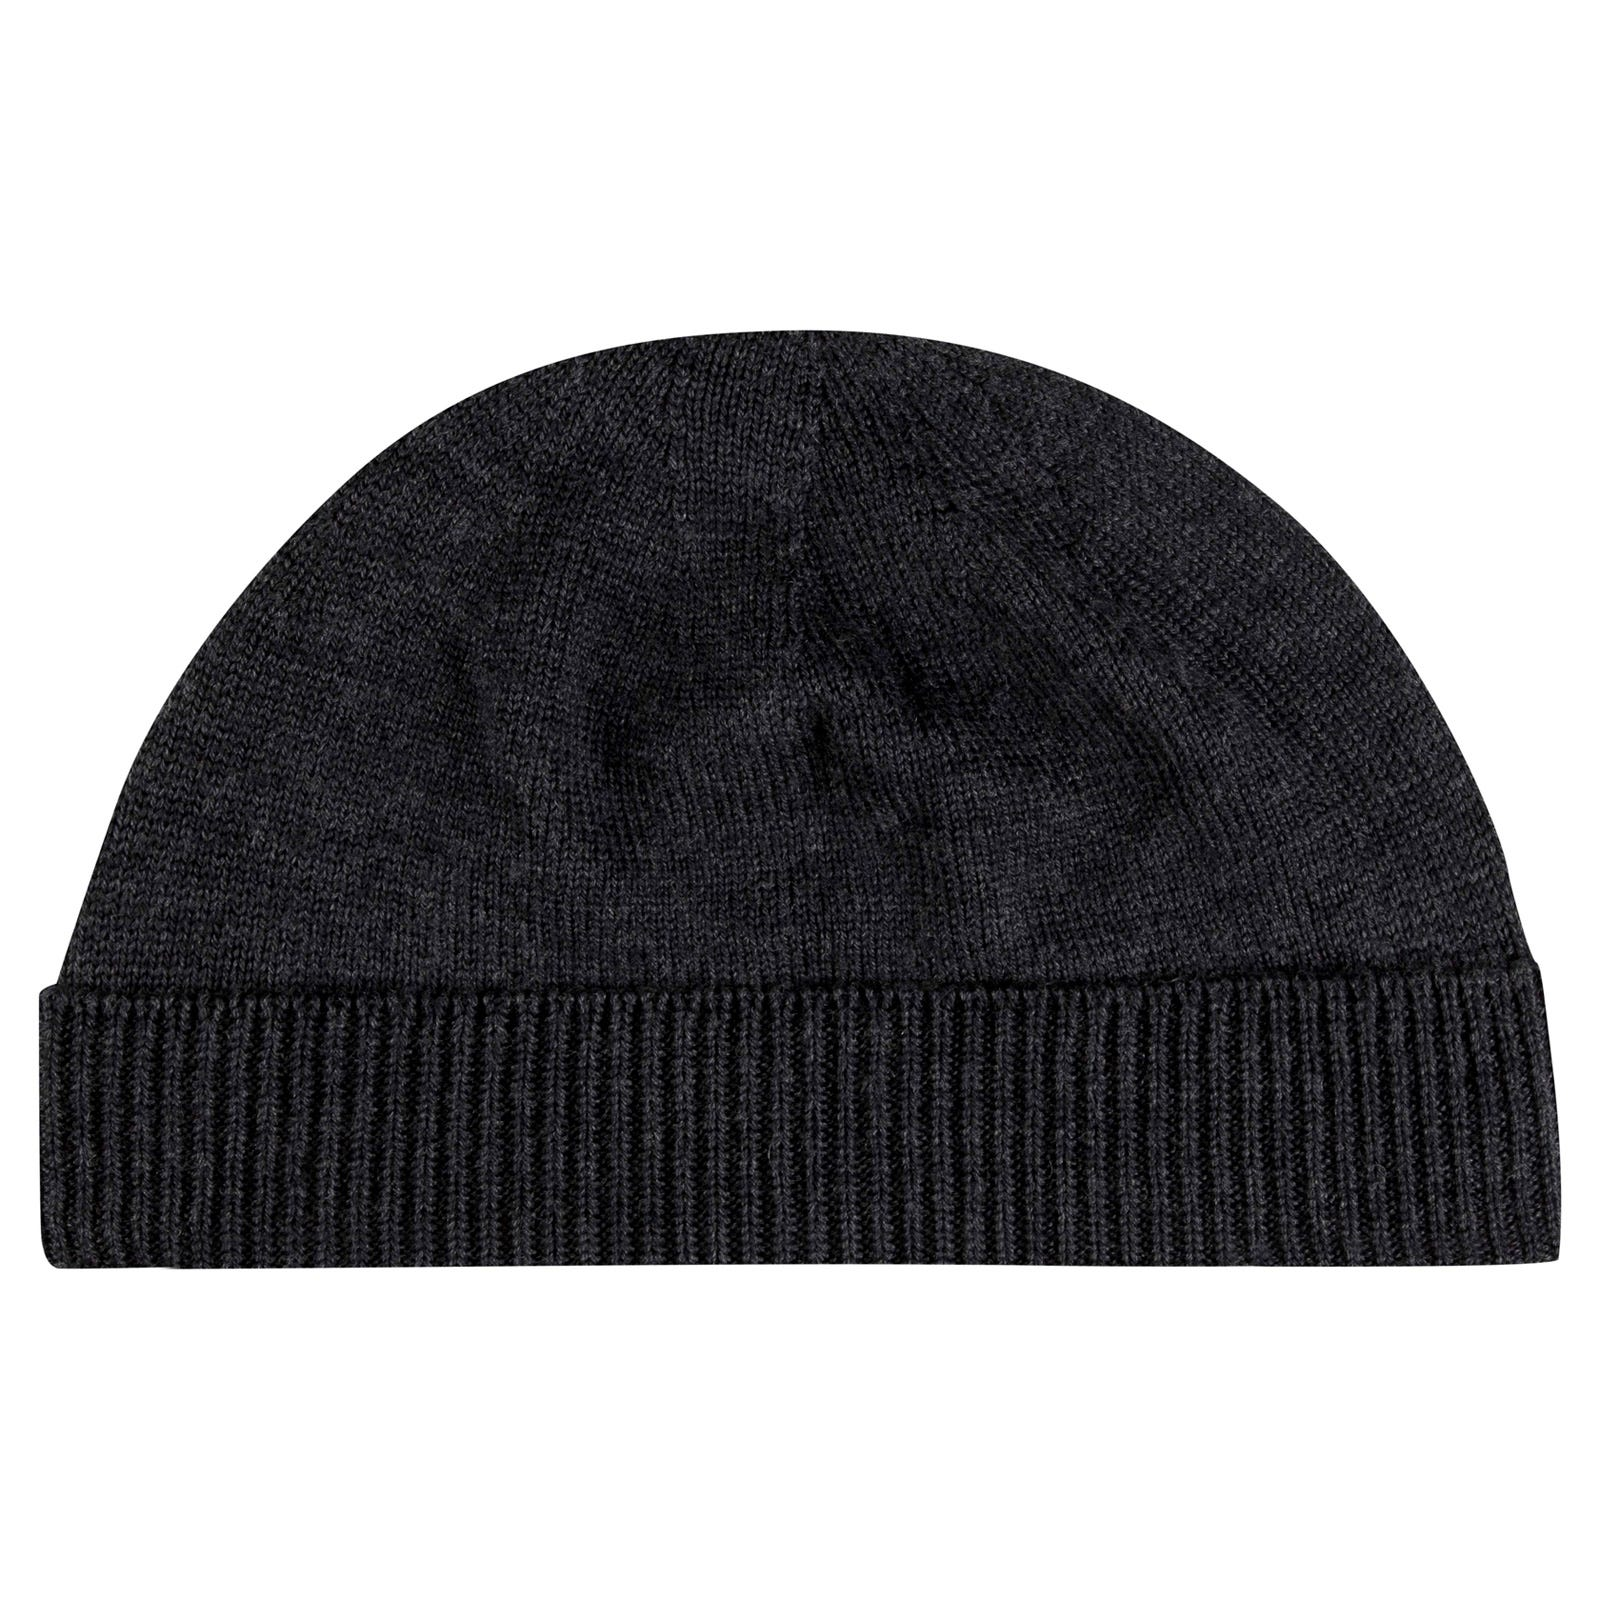 John Smedley Taurus Merino Wool Hat in Charcoal-ONE